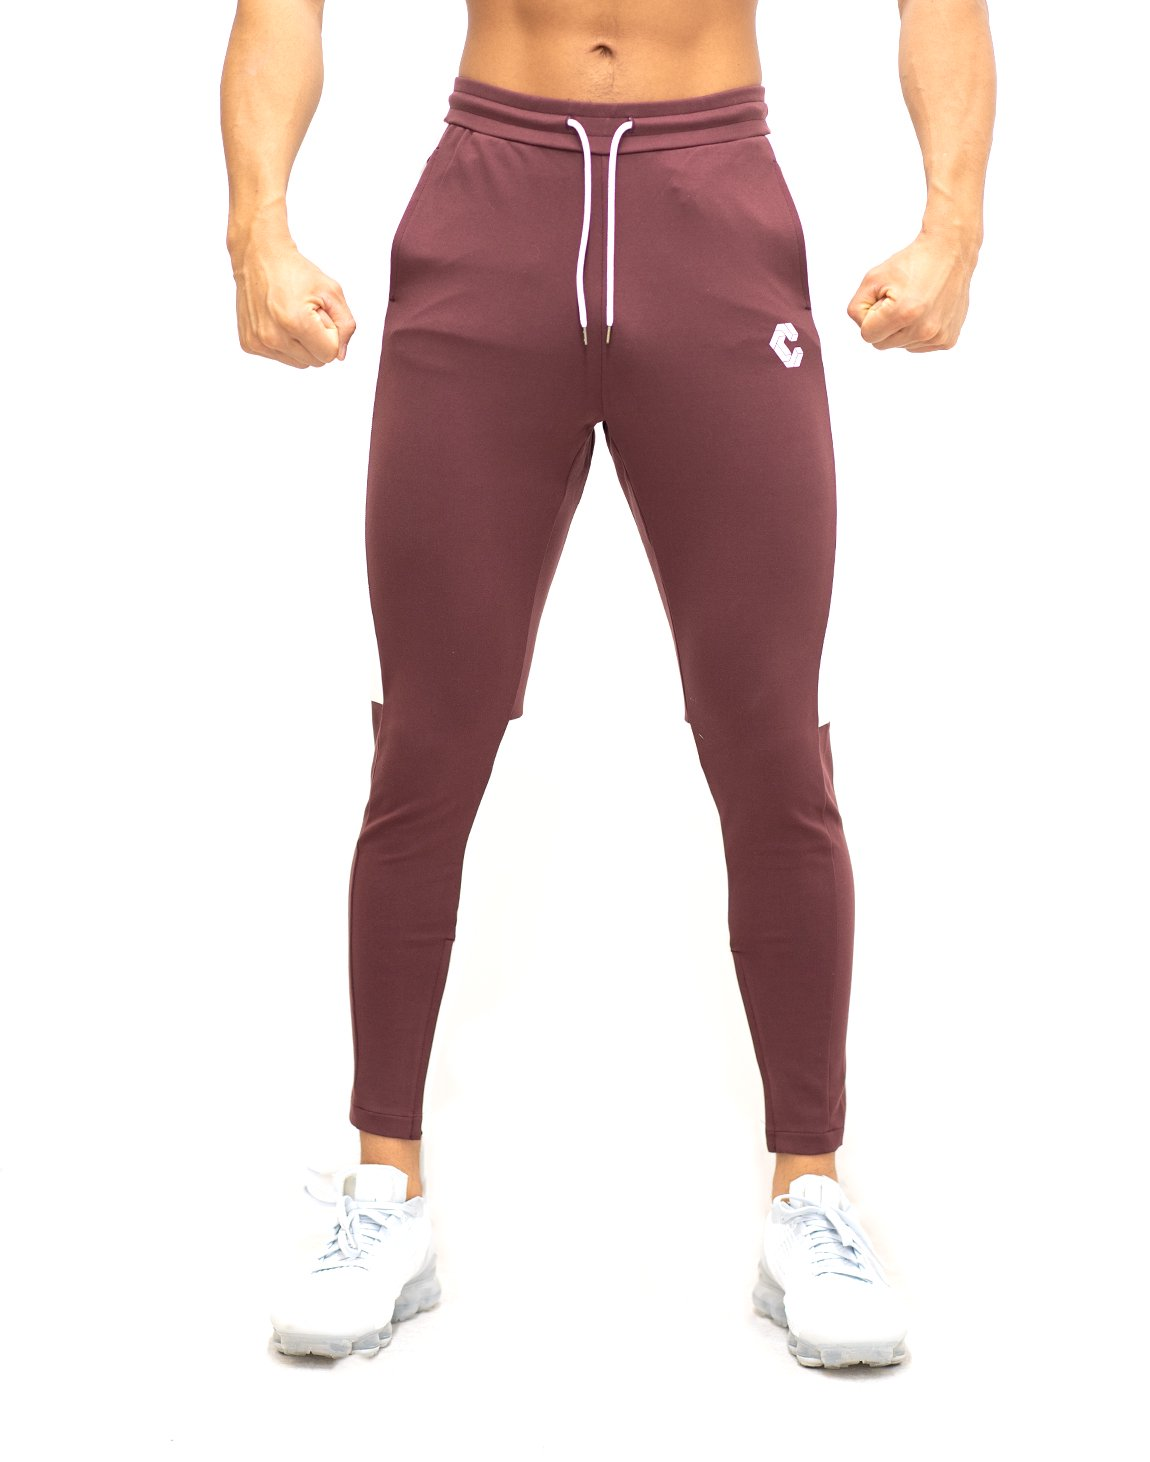 <img class='new_mark_img1' src='https://img.shop-pro.jp/img/new/icons1.gif' style='border:none;display:inline;margin:0px;padding:0px;width:auto;' />CRONOS SIDE HALF LINE PANTS 【BORDEAUX】